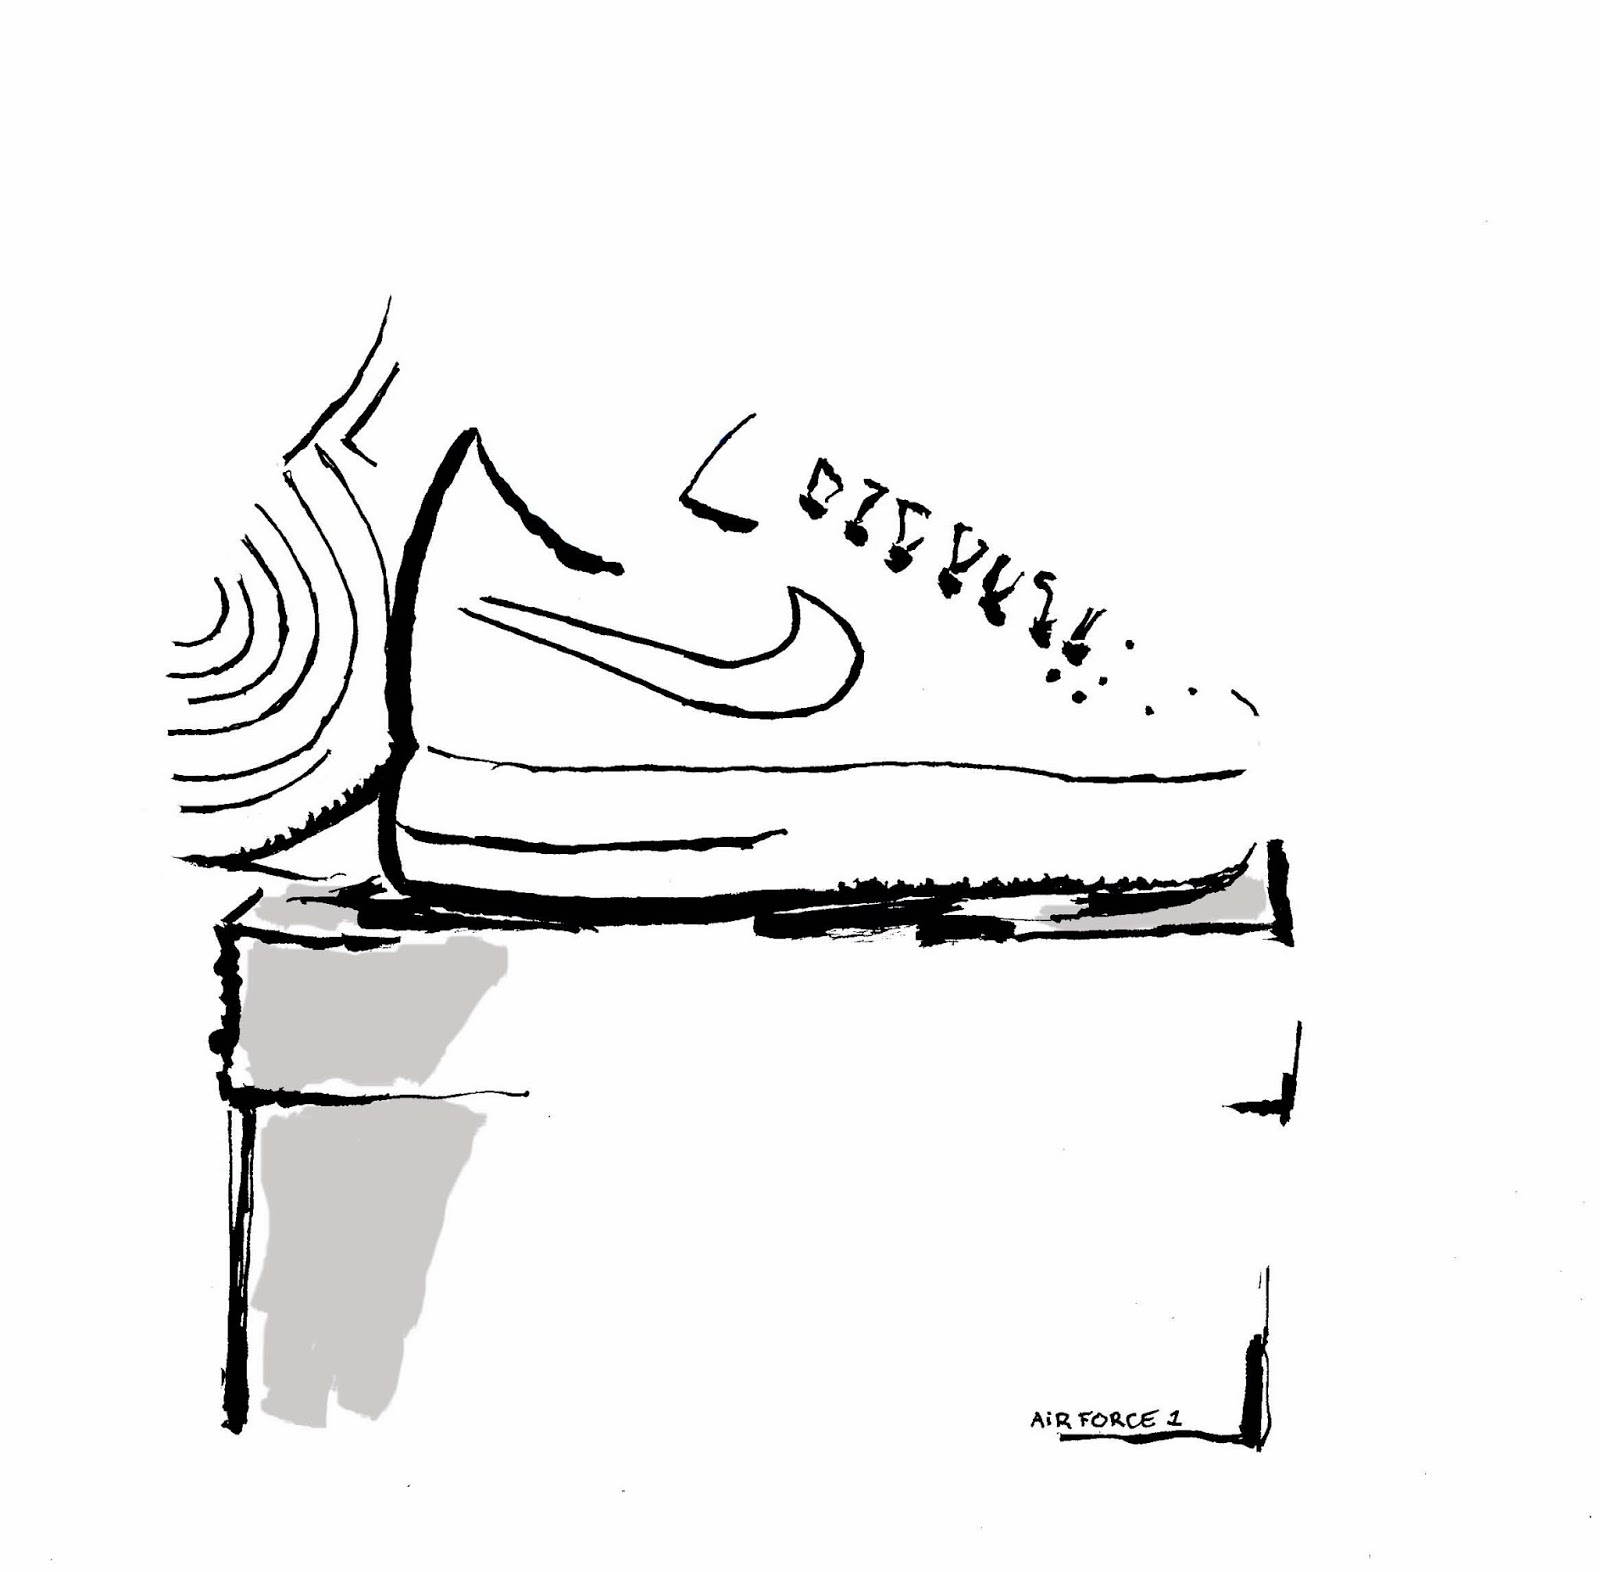 airforce1 airmax nike airmax nike airforce 1 white sneakers SS15 shoetrends shoes fashiontrends fashiontips fashionillustration illustration shopping  design fashiondrawing trends minimaldesign minimallook minimalfashion printed animal print black and white